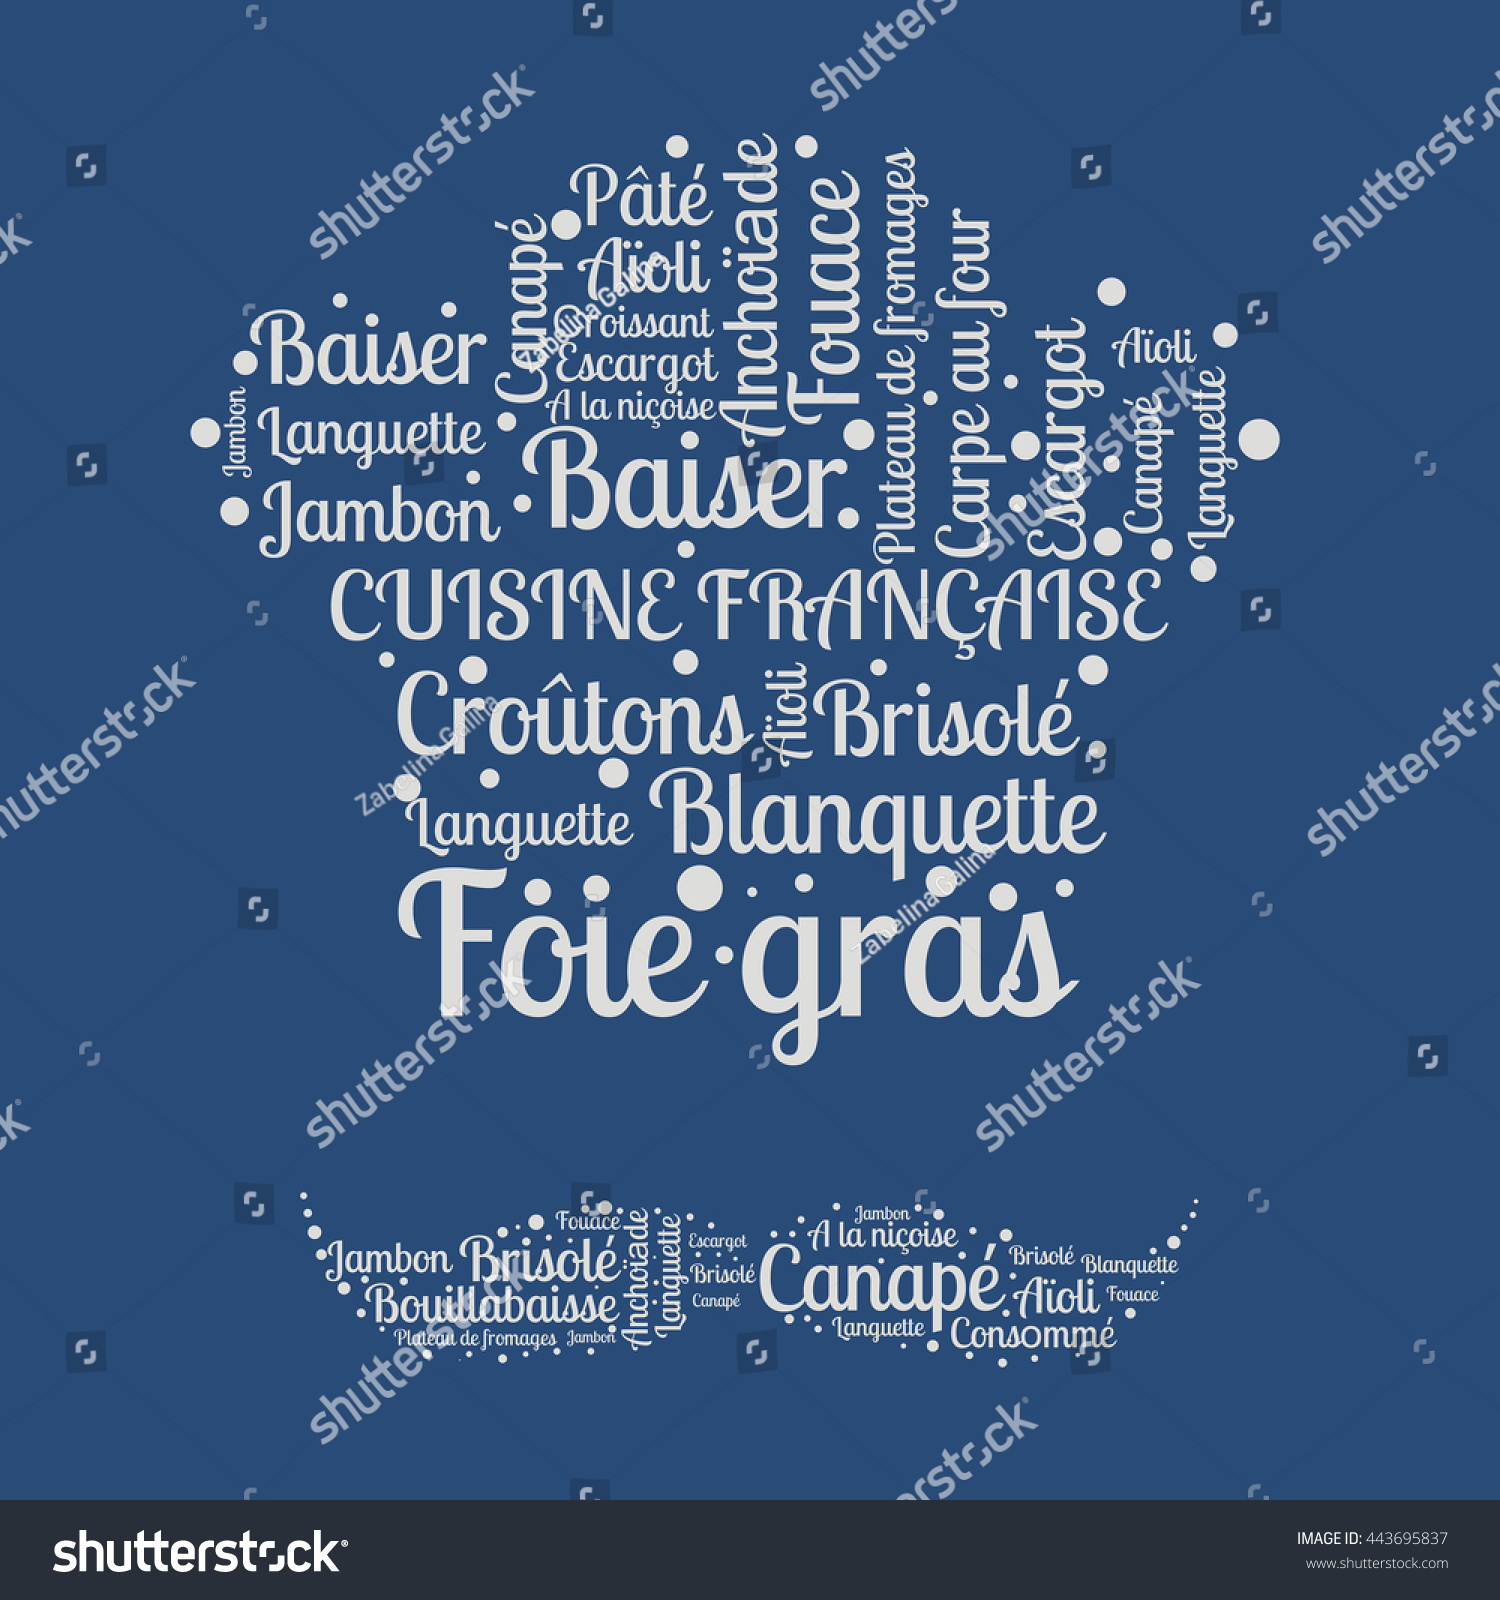 Peachy Drawing From The Words The French Cuisine The Name Of The French Short Hairstyles For Black Women Fulllsitofus